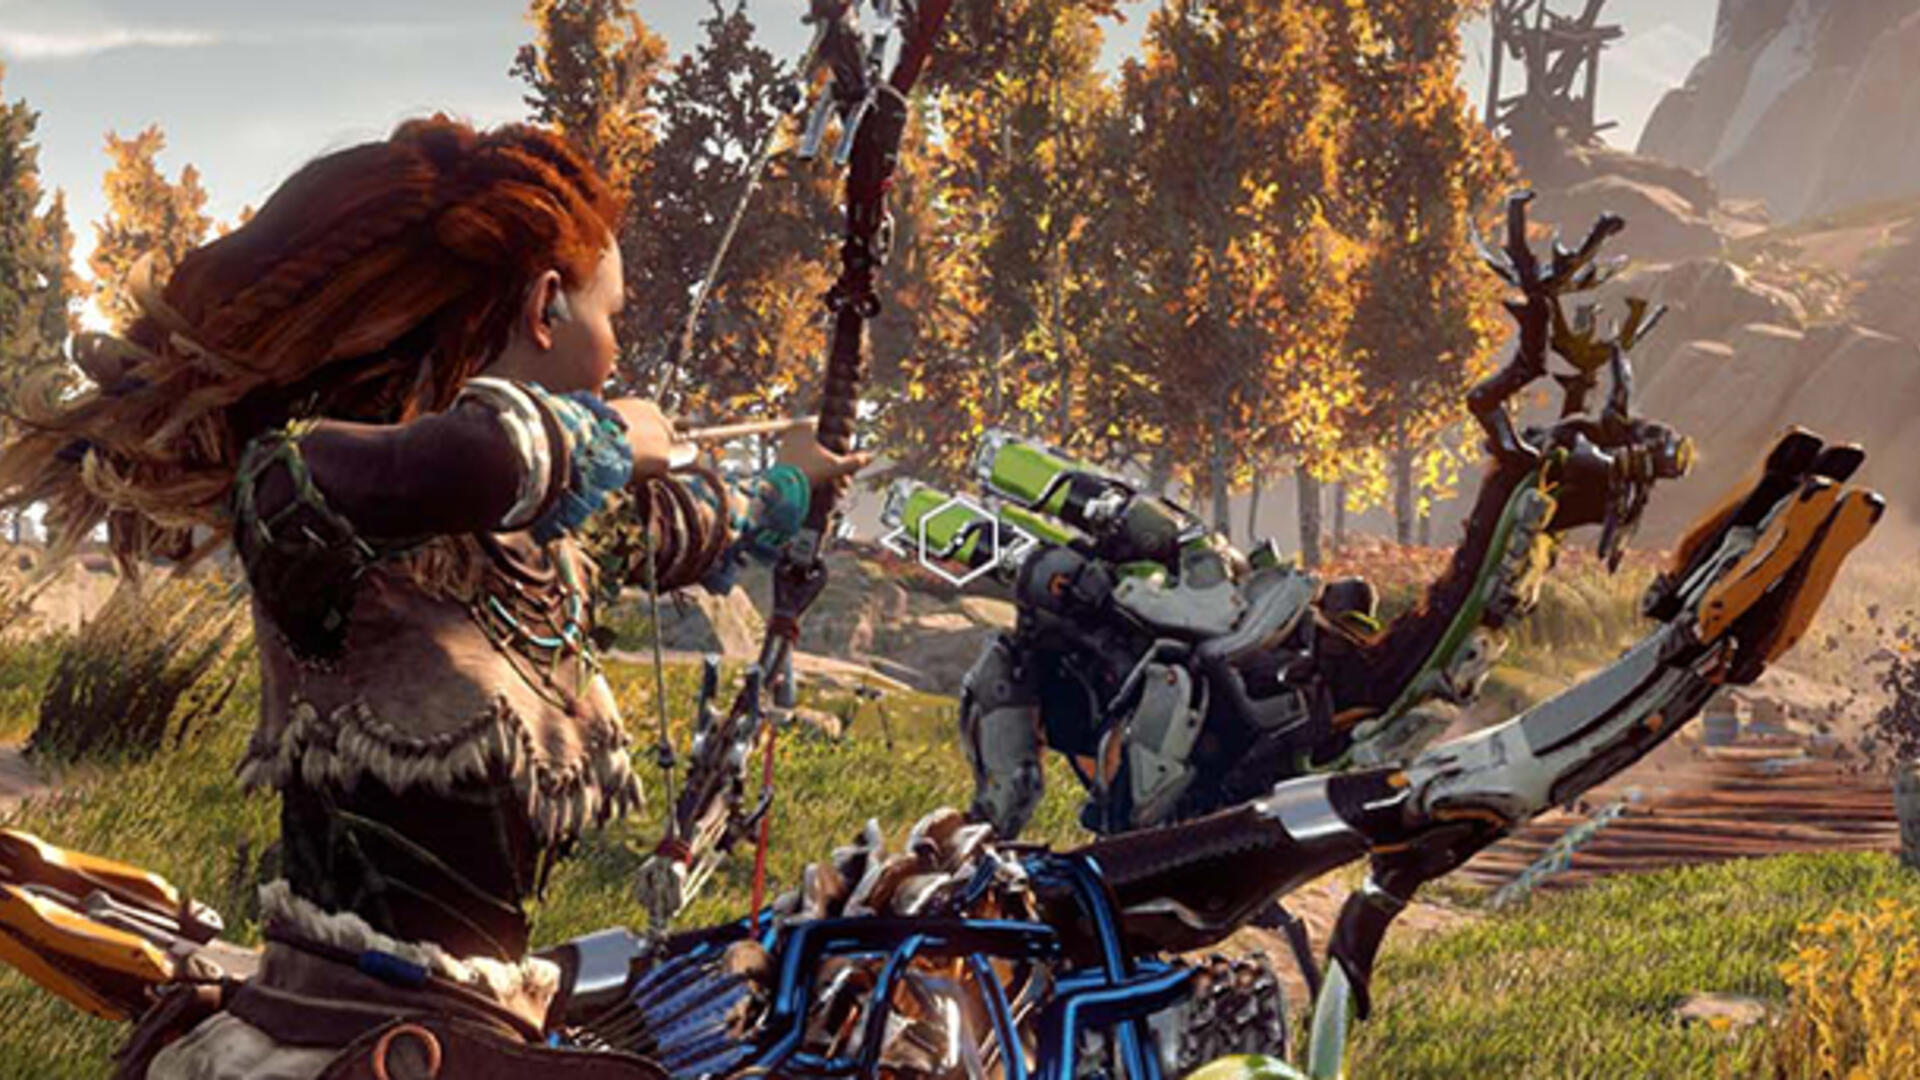 Horizon Zero Dawn Guide: The Best Mods to Create the Most Powerful